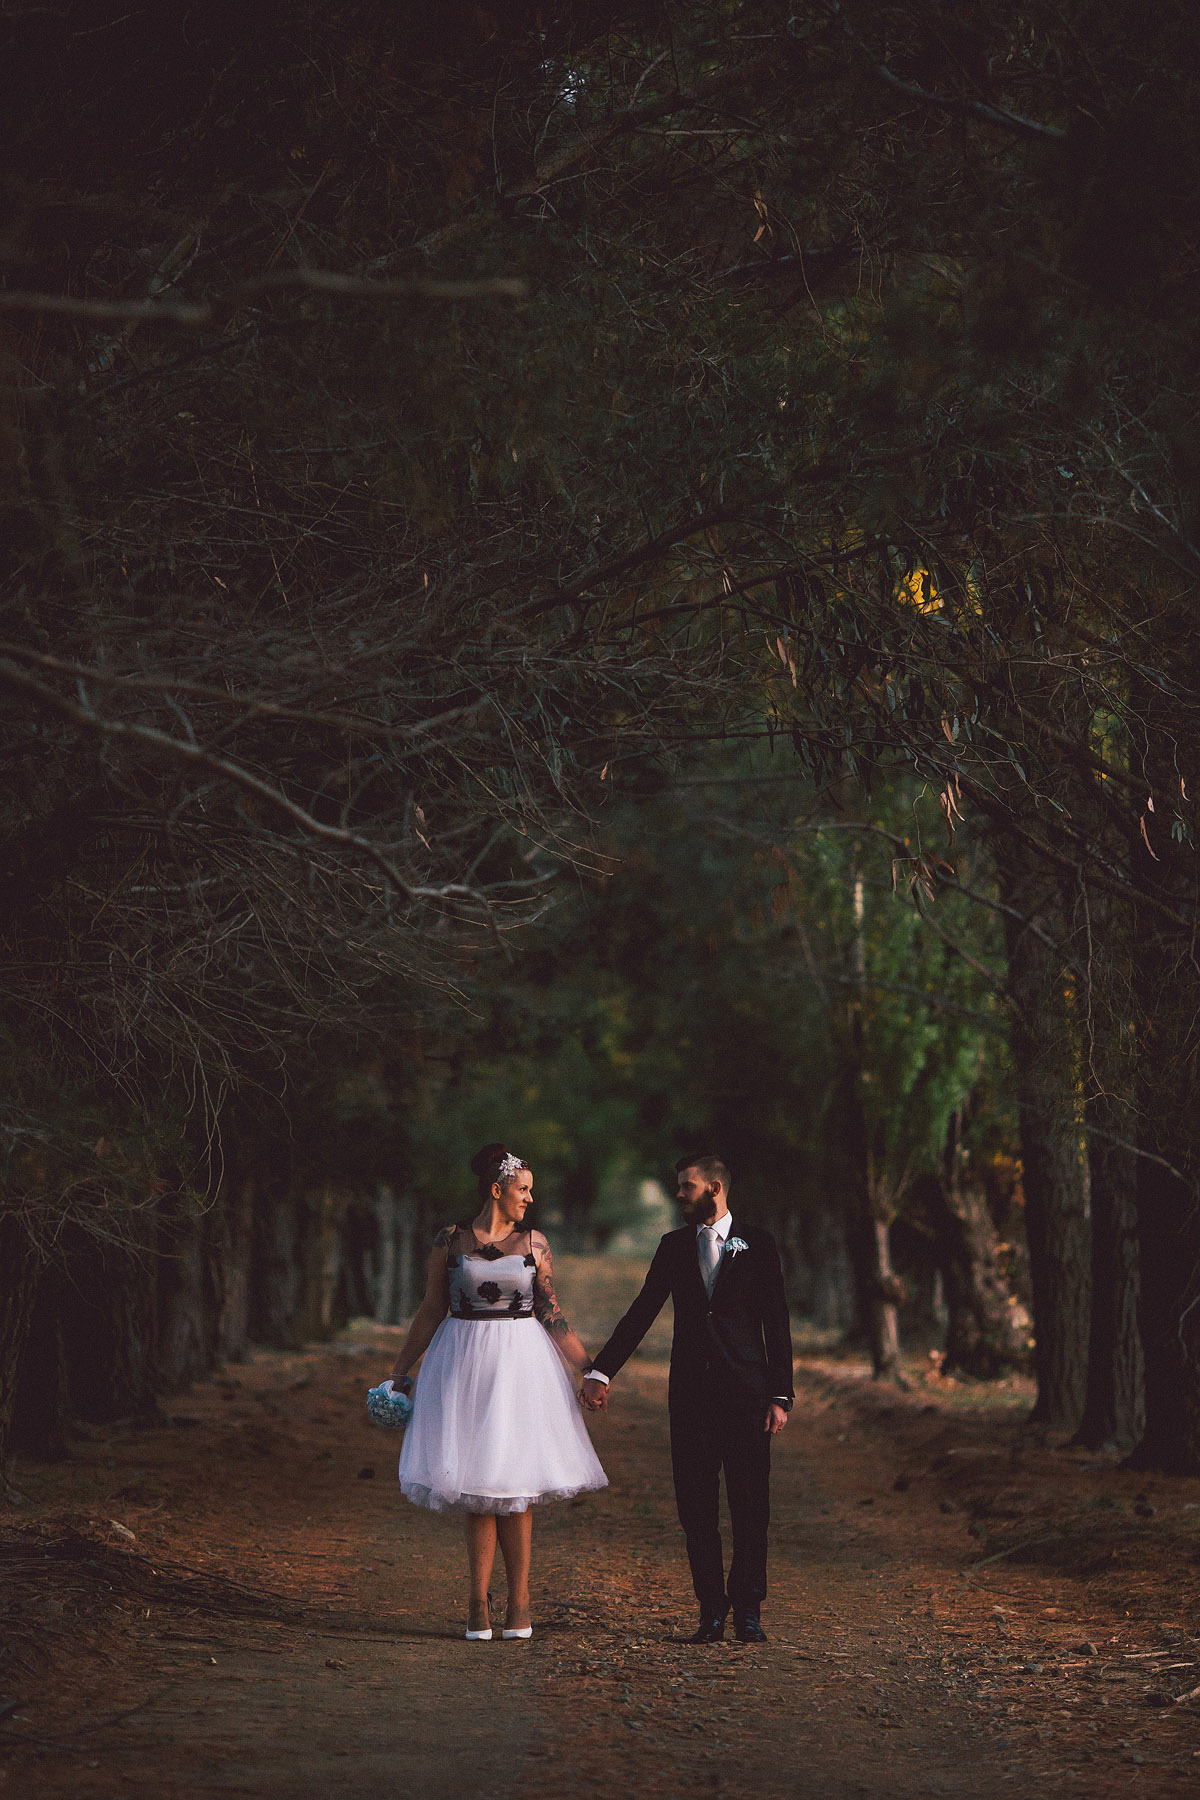 Canberra Wedding Photography - Justin and Bree - 0005